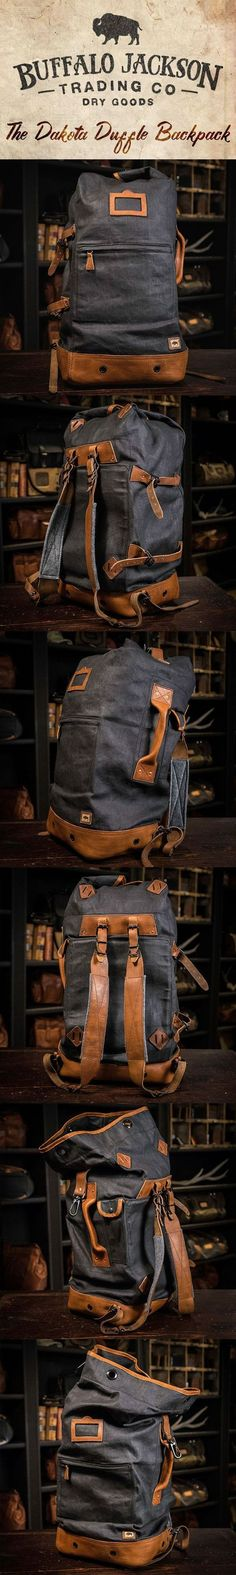 Crafted of waxed canvas and distressed full grain leather, this men's vintage military duffle backpack was built to honor the memory of good men and good days. Fill it with your sports gear or go hiking across Europe. This bag can handle it. Great gift for him. padded leather shoulder straps | interior laptop sleeve | finest leathers and canvases